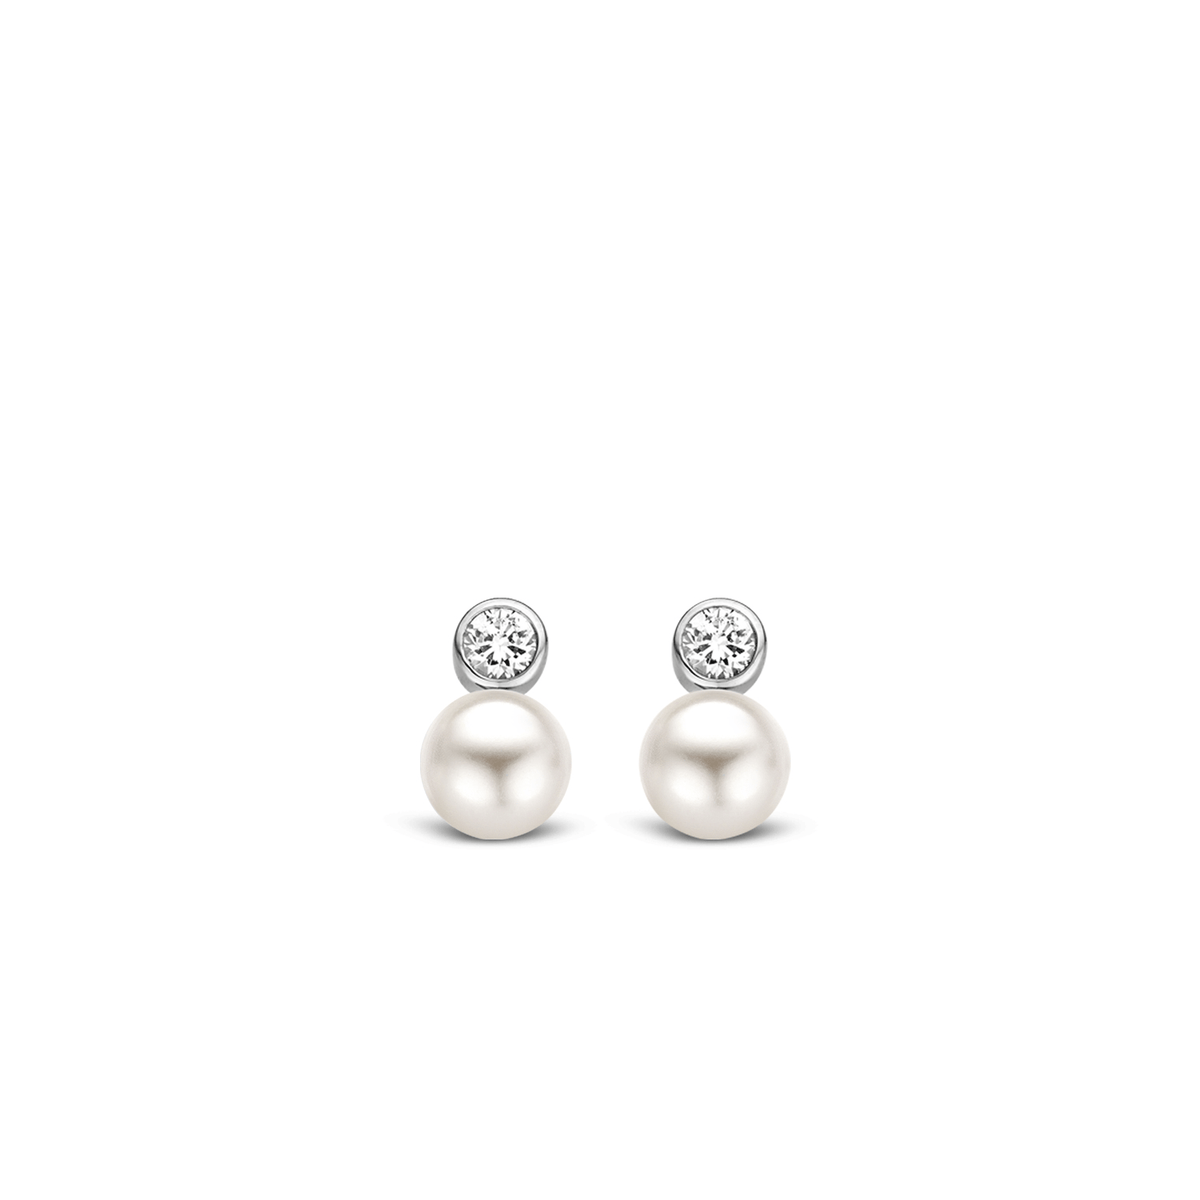 TI SENTO - Milano Earrings 7590PW